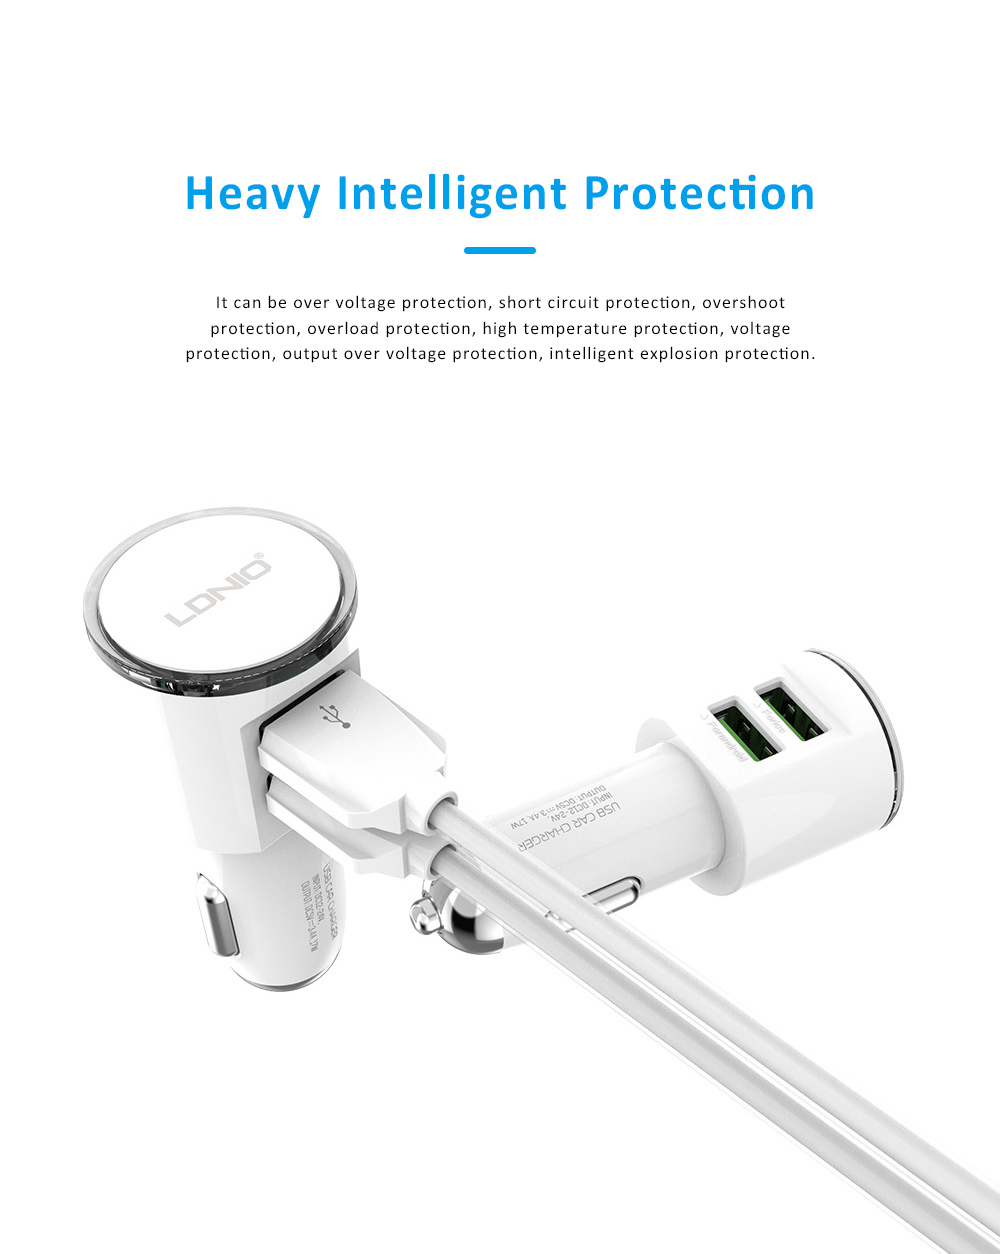 Dual USB 3.4A Zinc Alloy Mobile Phone Tablet Data Cable Car Charger with Intelligent Protection 3